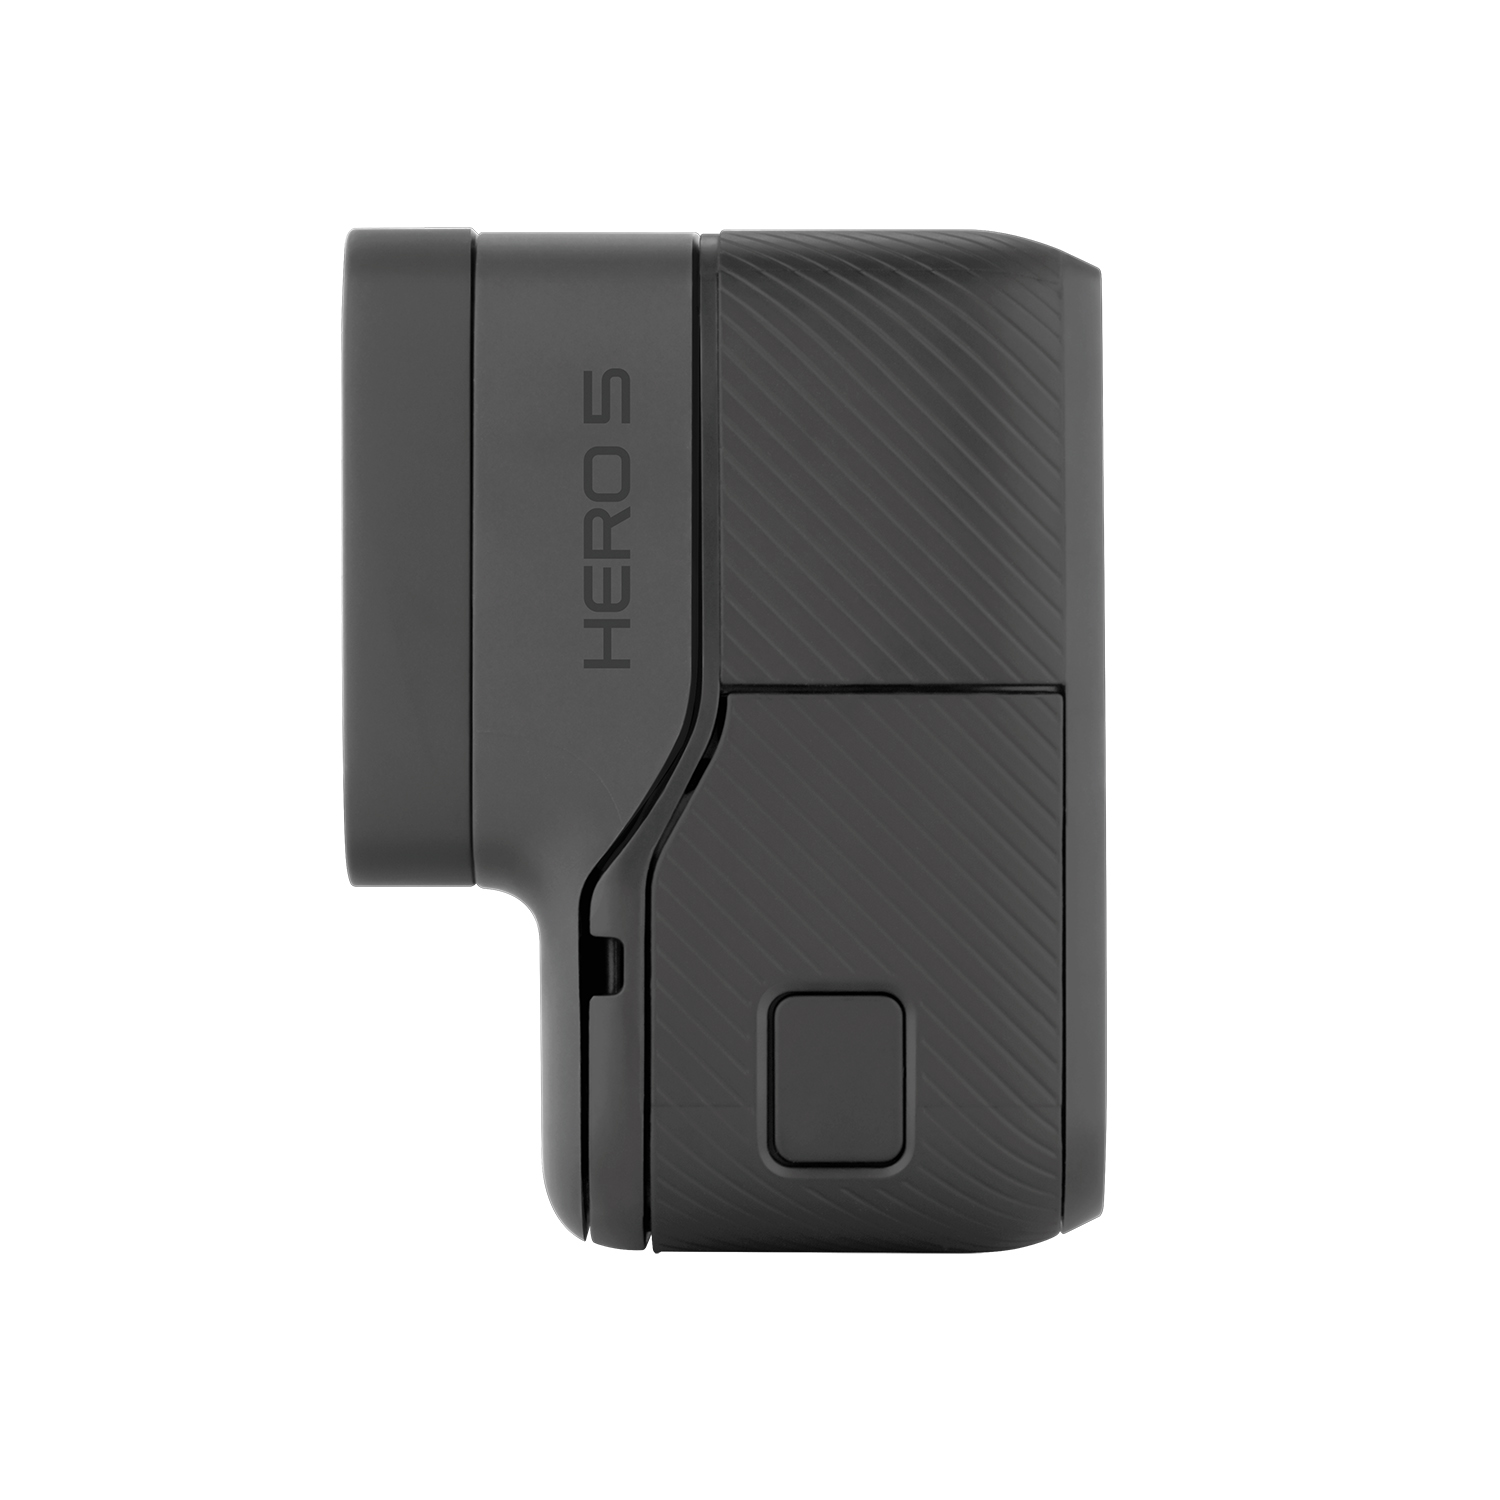 a9e2c5e0e5e55 GoPro HERO5 Black 4K Action Camera - Walmart.com